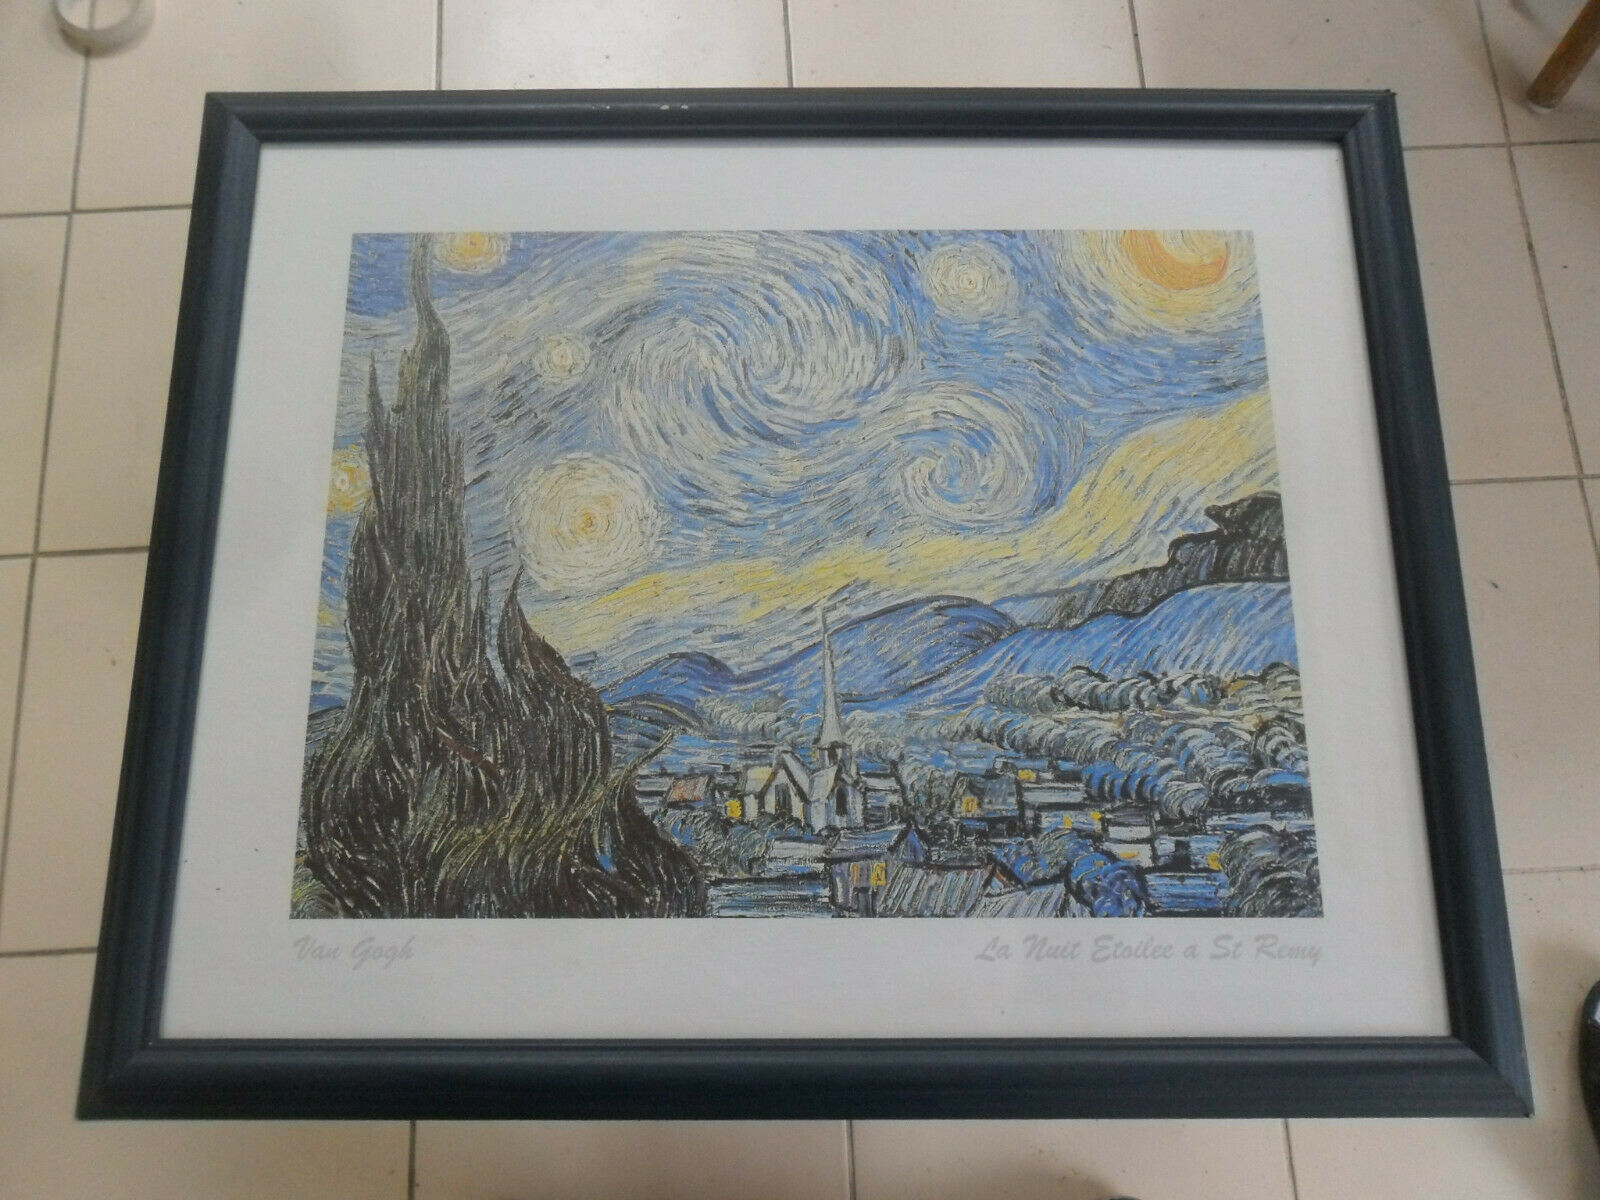 Framed Print Picture Vincent Van Gogh Painting La Nuit Etoilee Starry Night